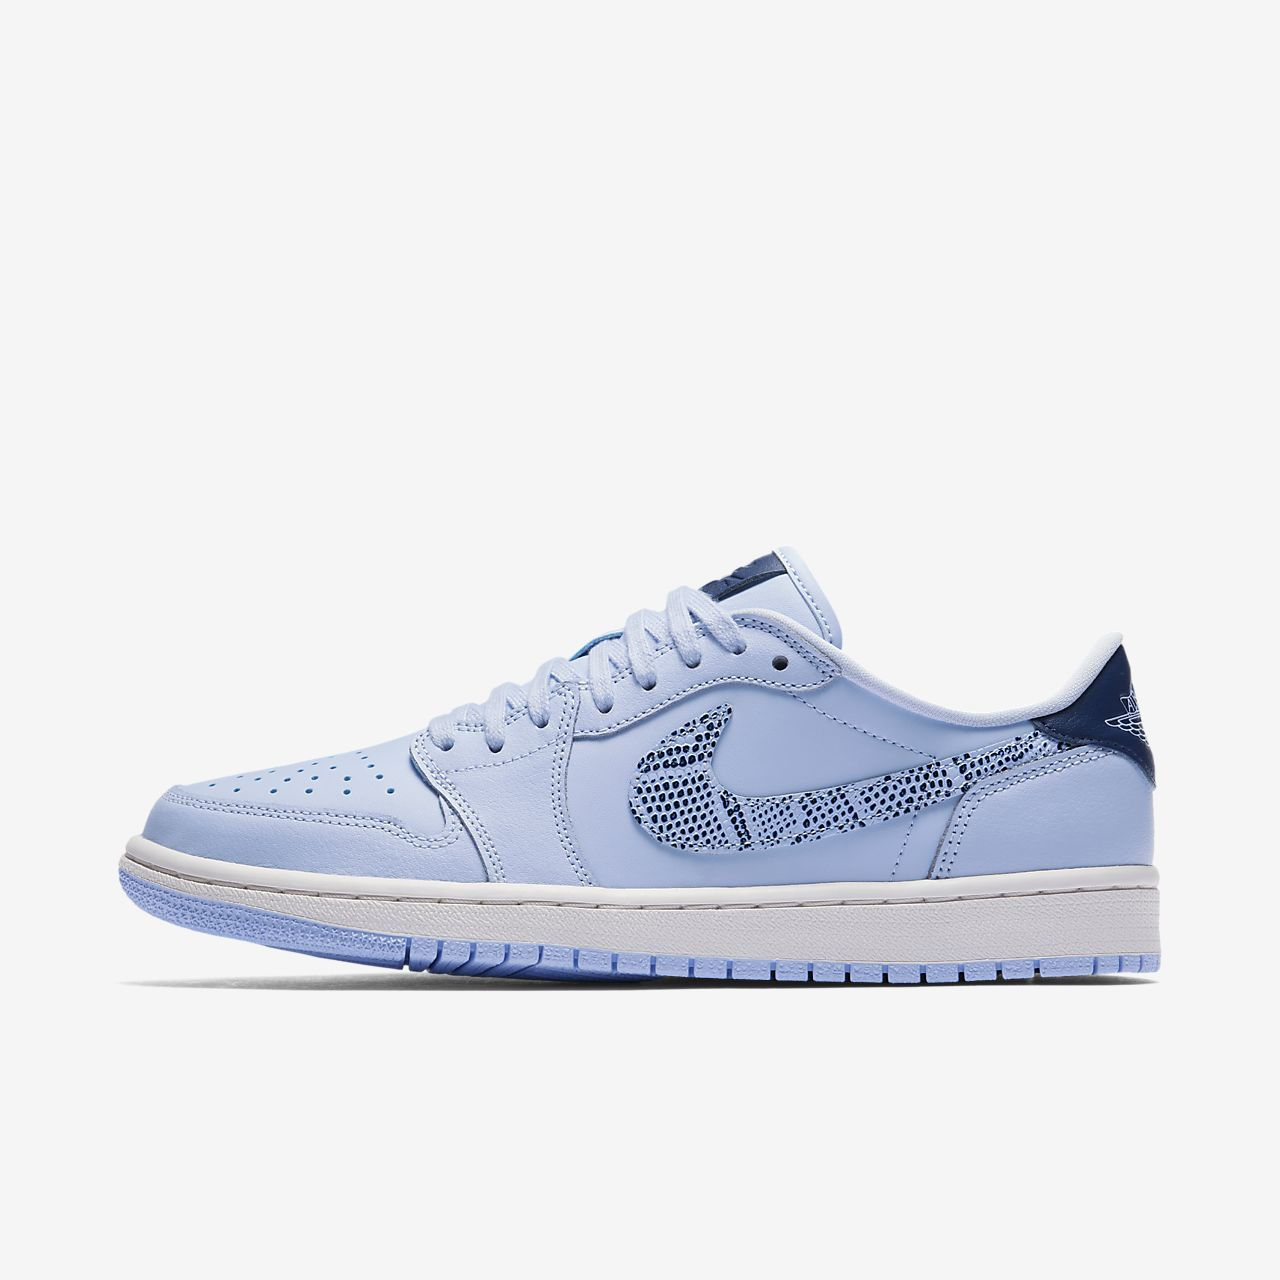 wholesale dealer 3bc0a 540a8 ... Sko Air Jordan 1 Retro Low OG för kvinnor